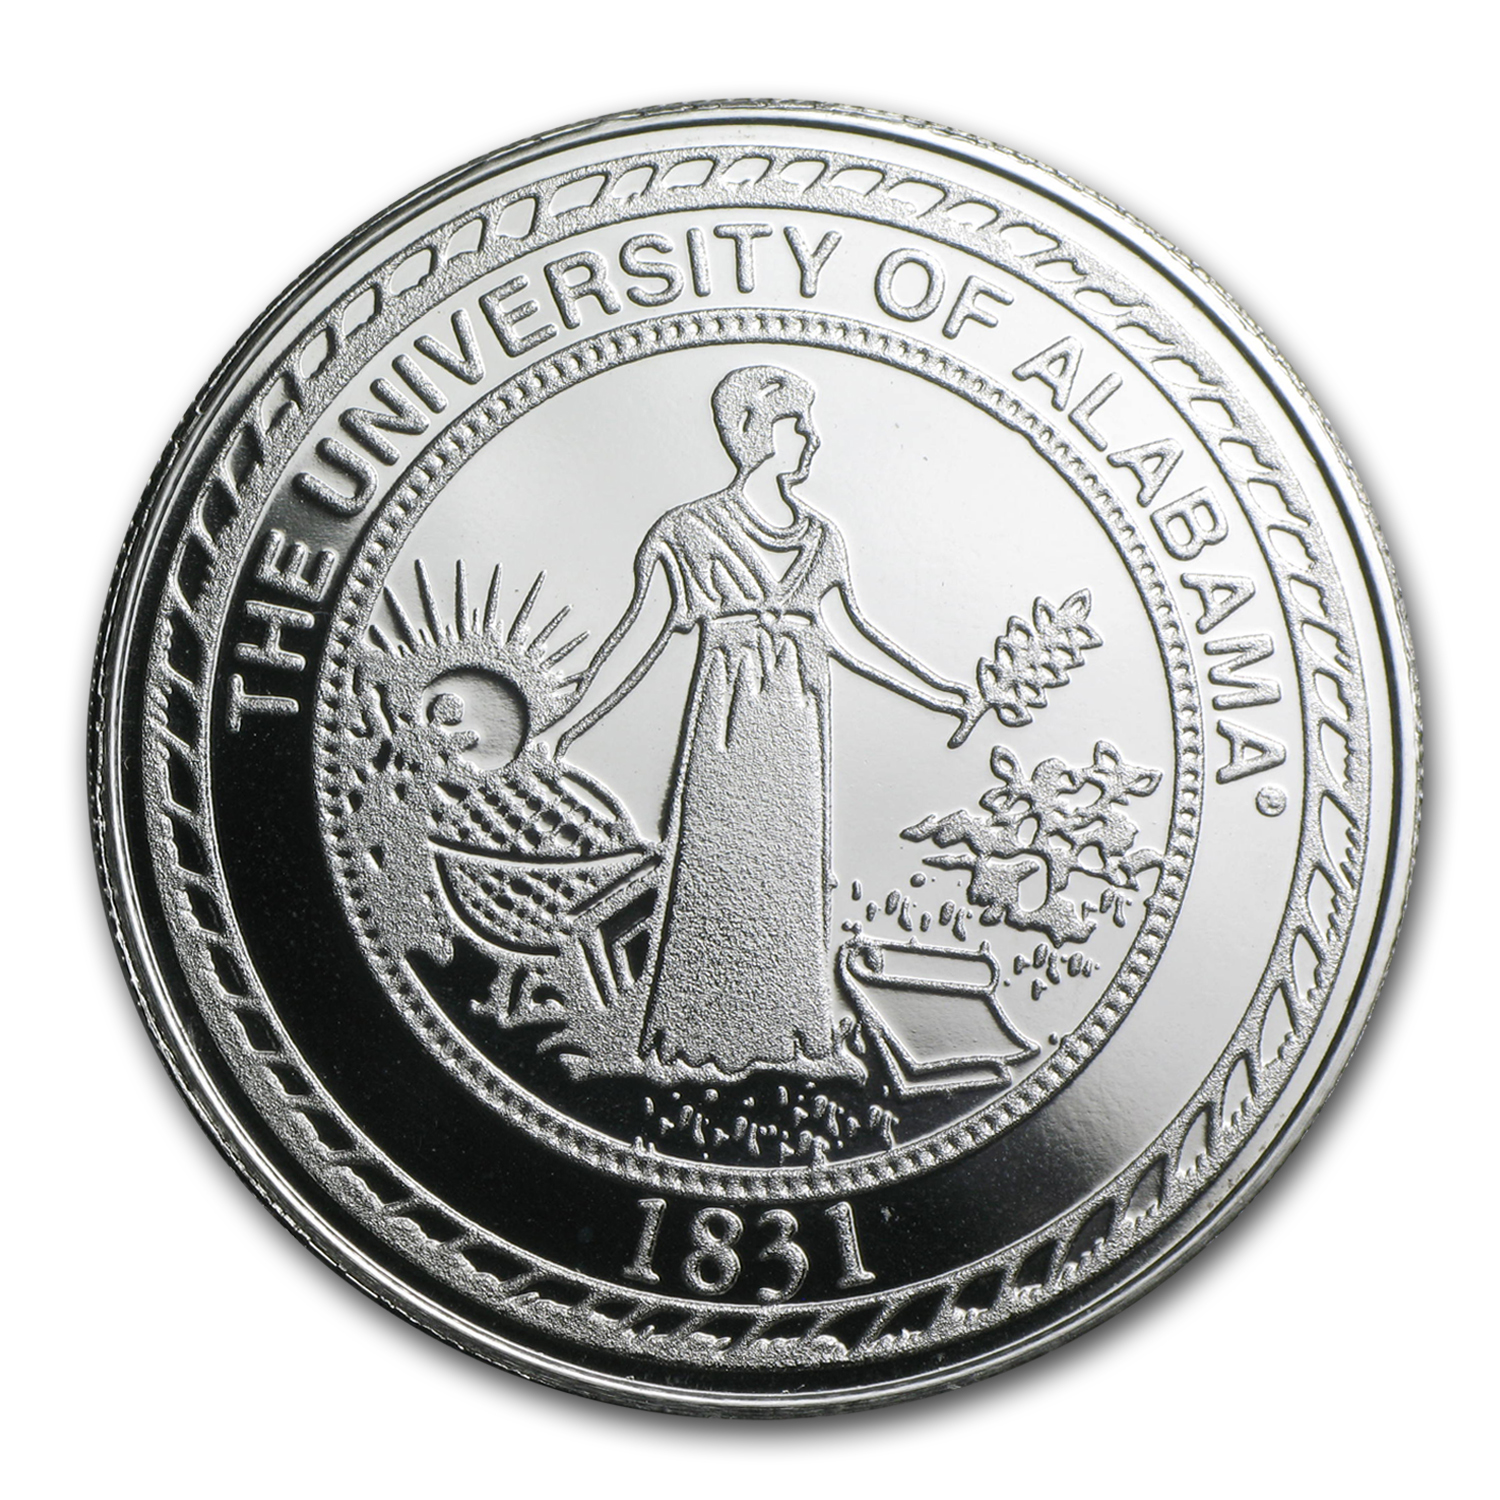 1 oz Silver Round - University of Alabama